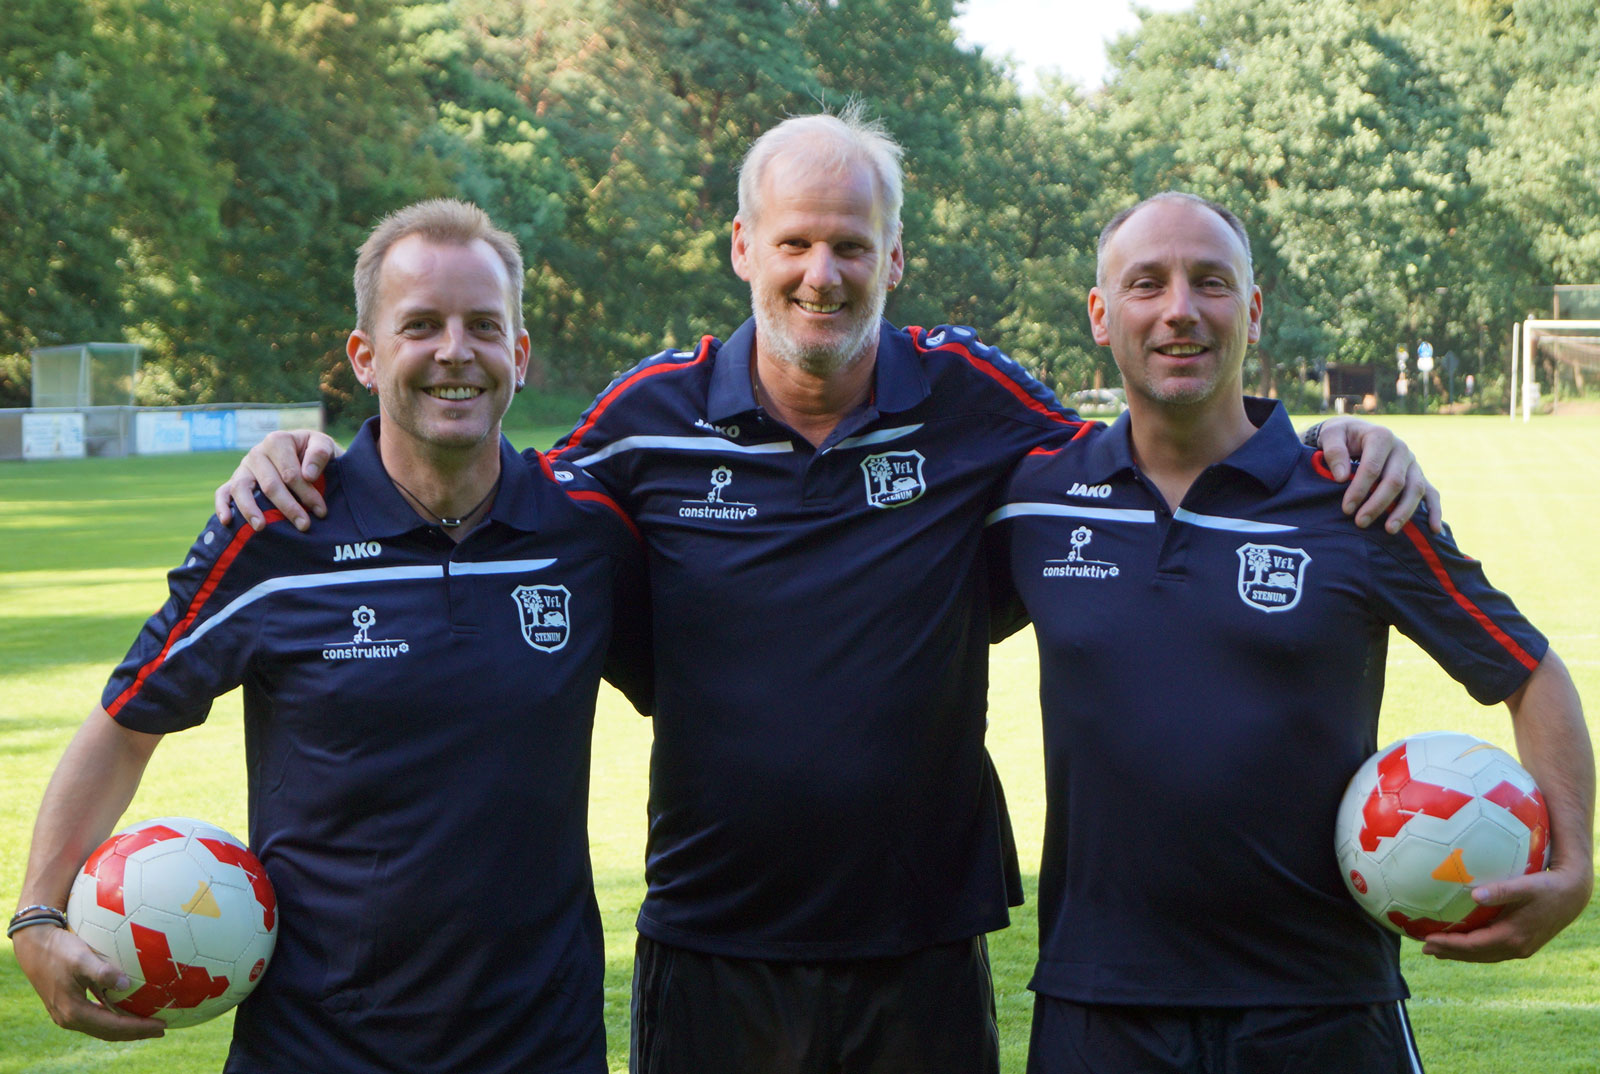 Das Trainerteam der E1 in der Saison 2017/2018 (v.l.): Tobias Ihde, Michael Flegel, Andreas Hillermann